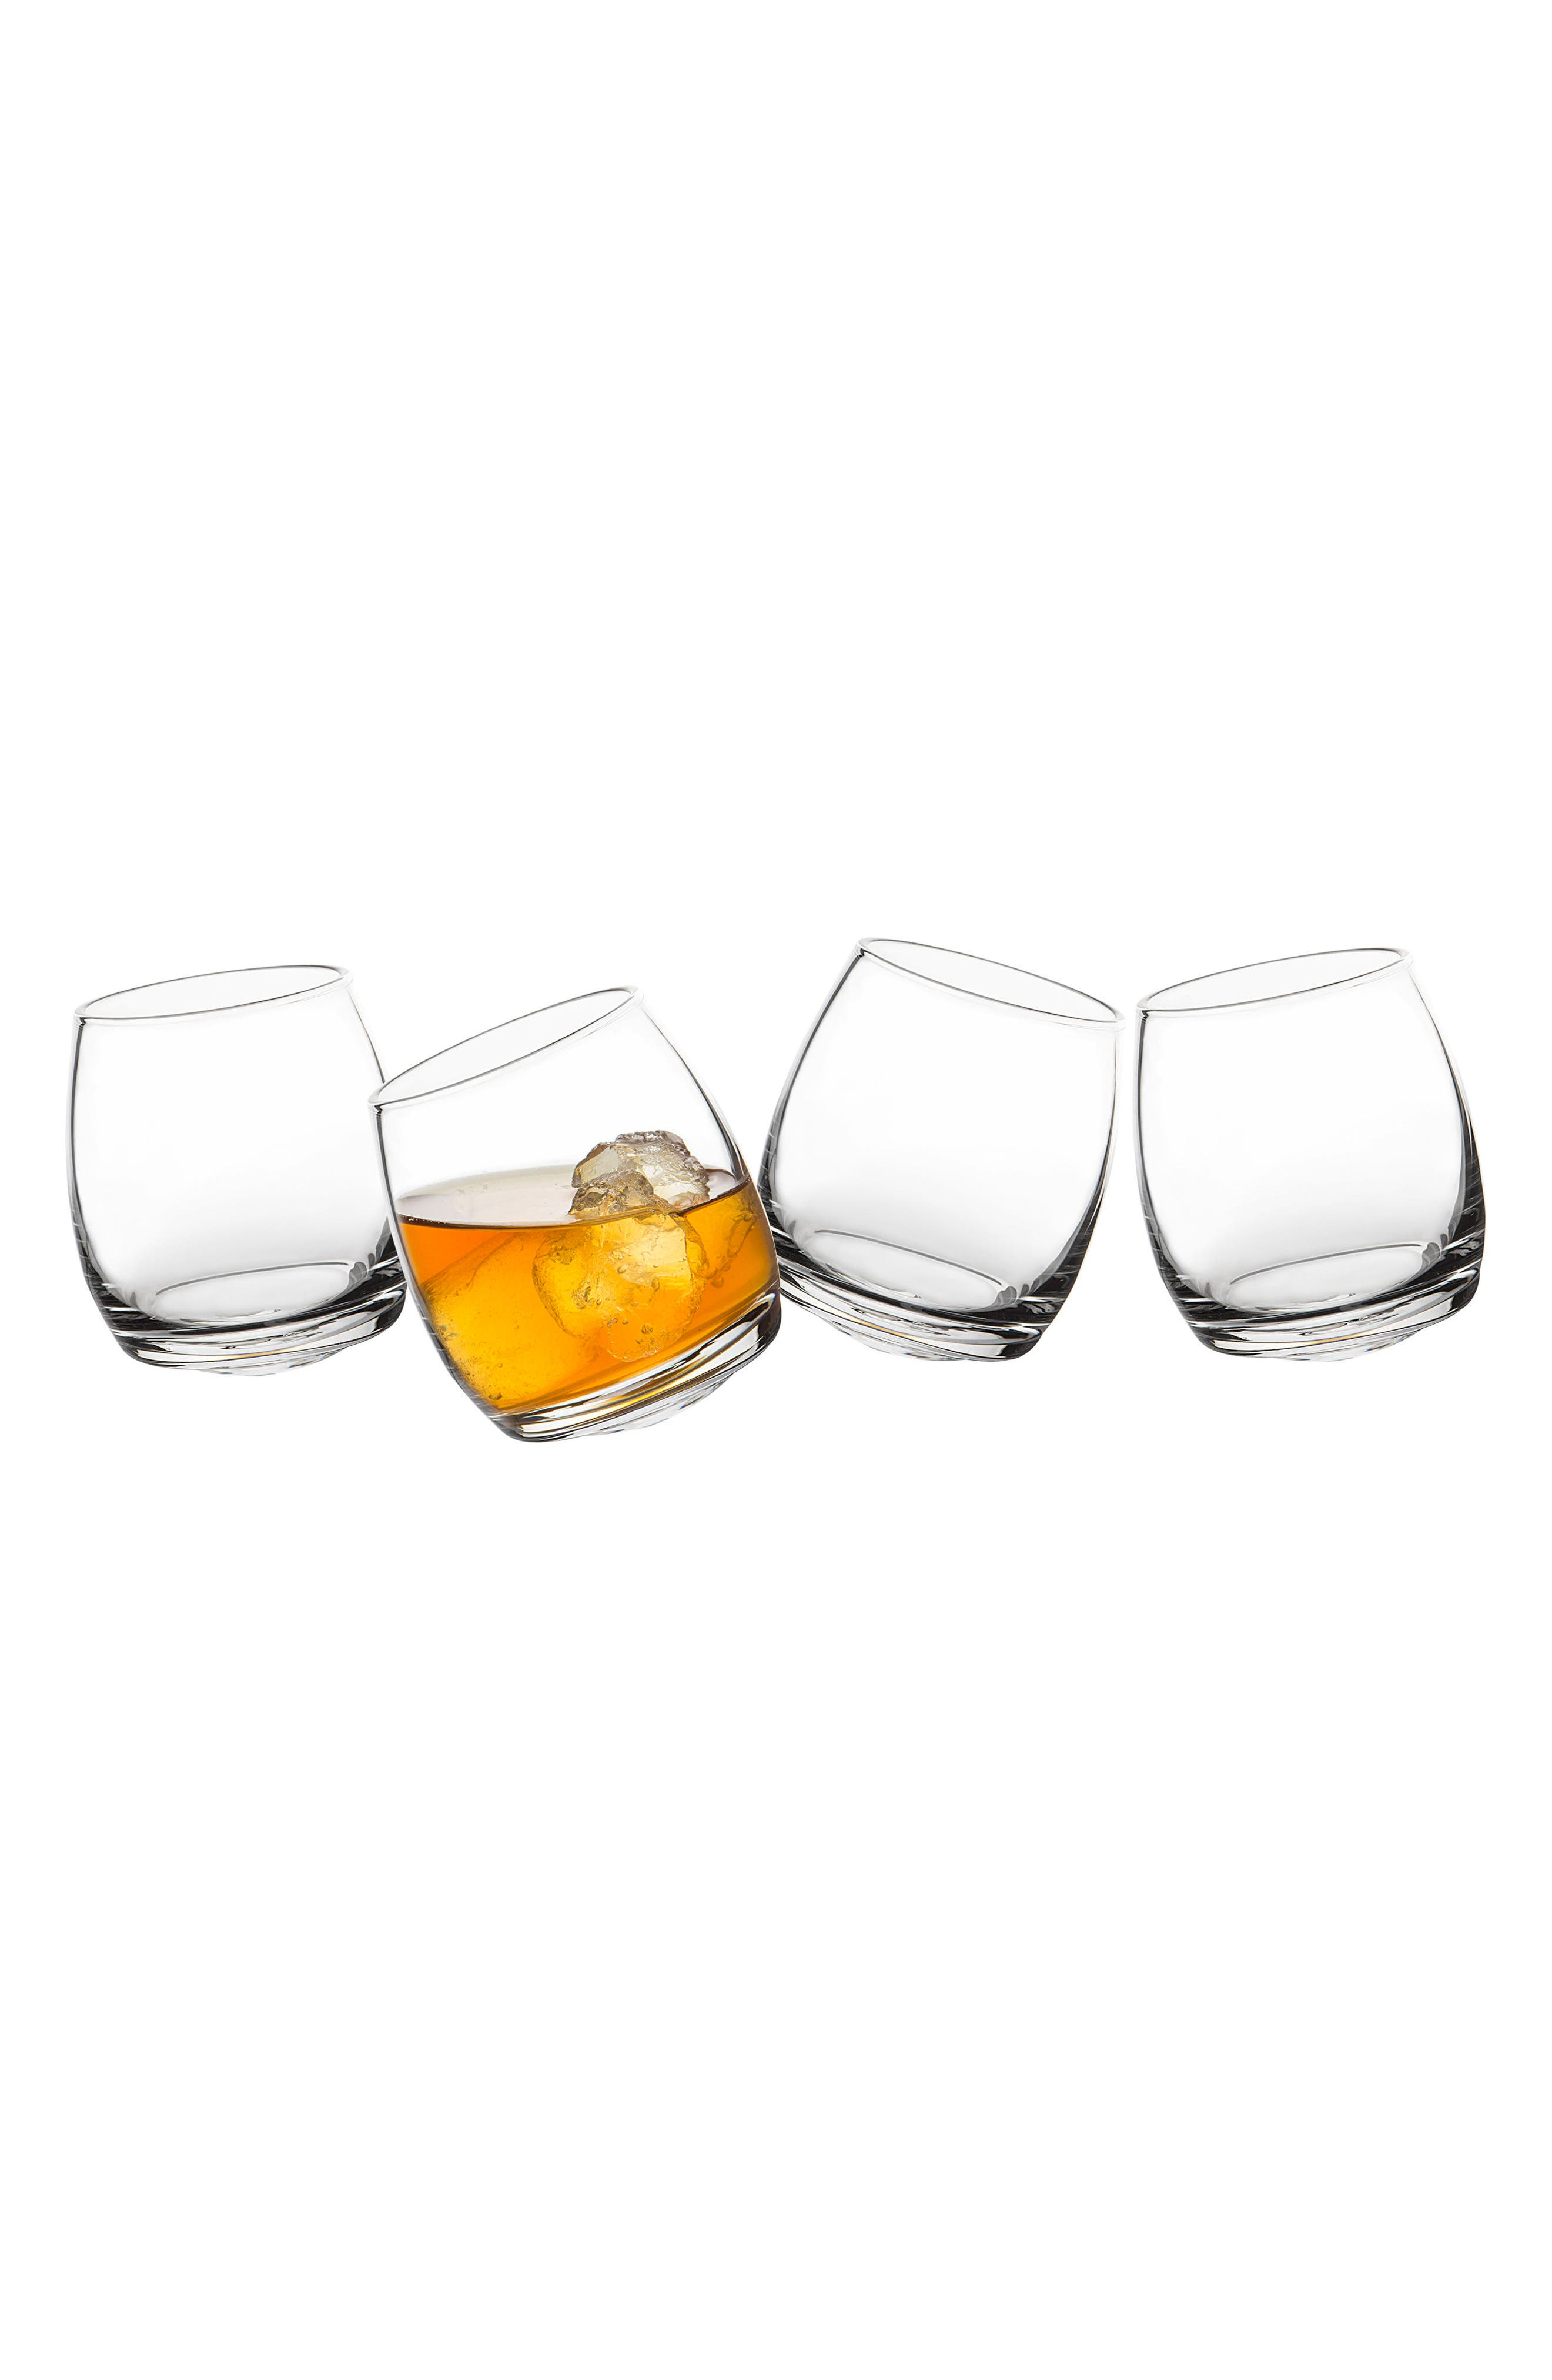 Monogram Tipsy Set of 4 Double Old Fashioned Glasses,                         Main,                         color, WHITE